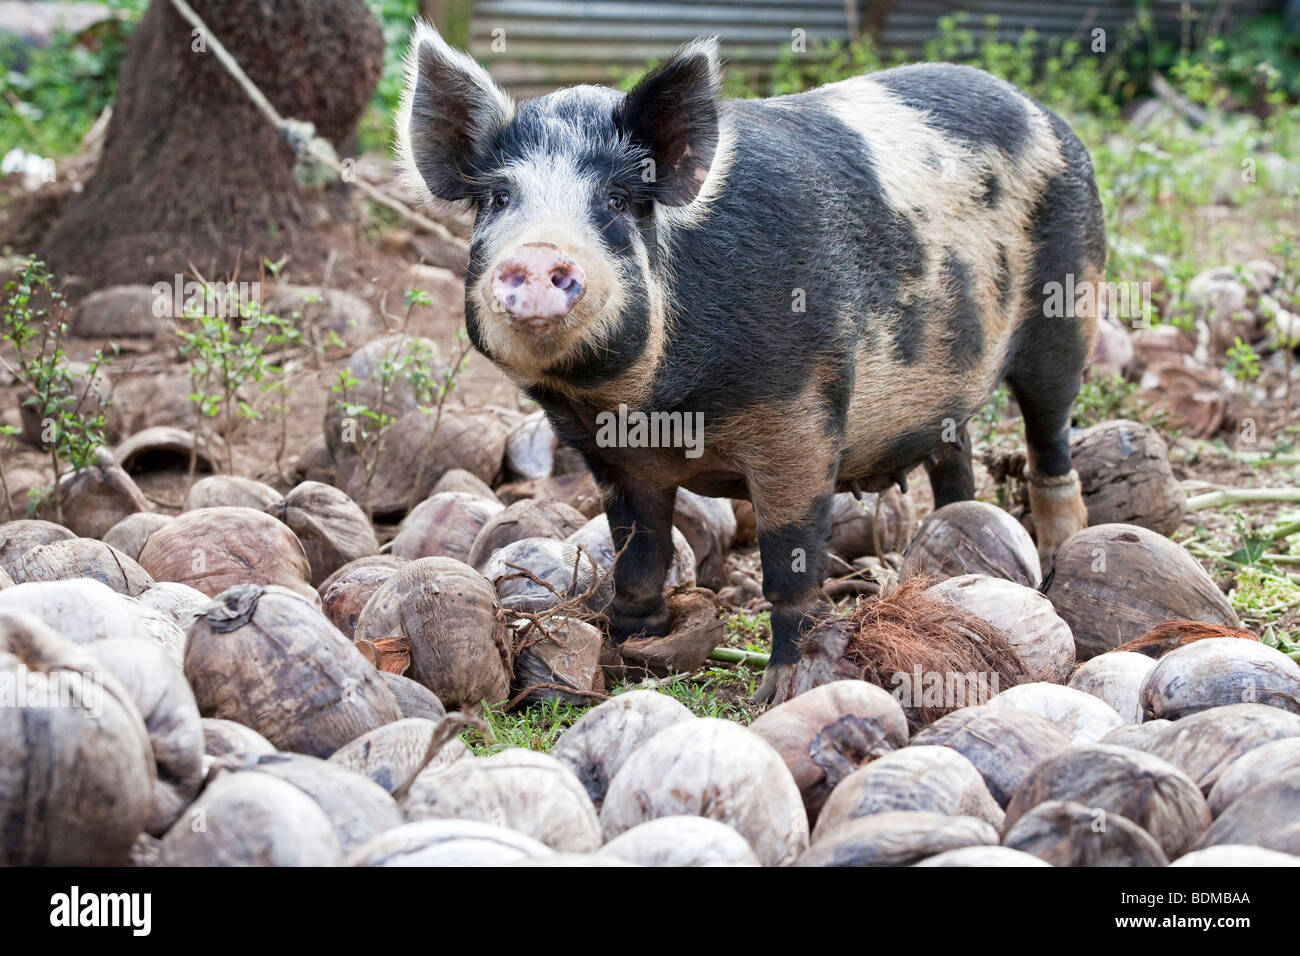 A tethered pig on Rarotonga in The Cook Islands - Stock Image